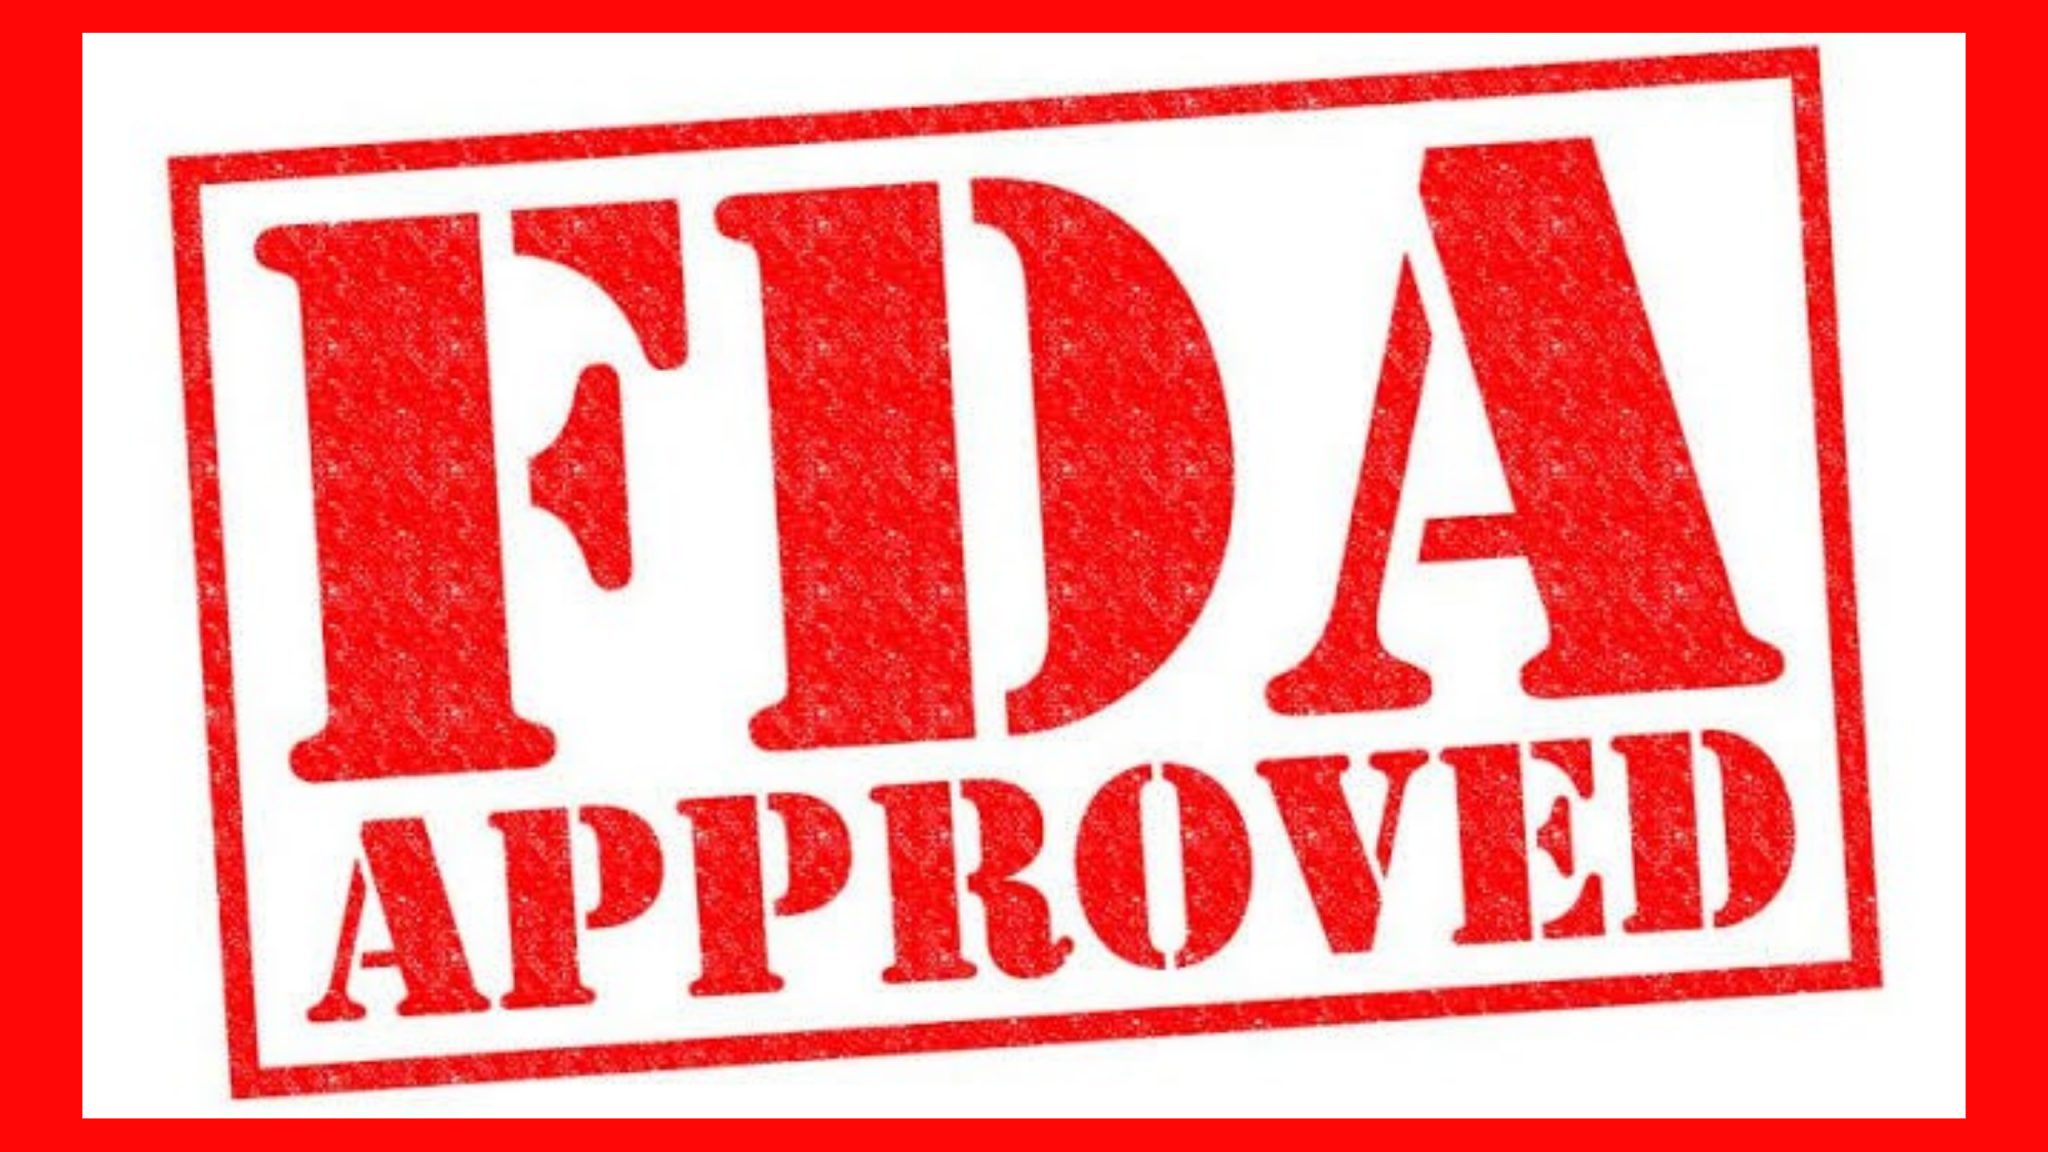 FDA Clears New Antibiotic Arikayce for Lung Disease - DrugsBank